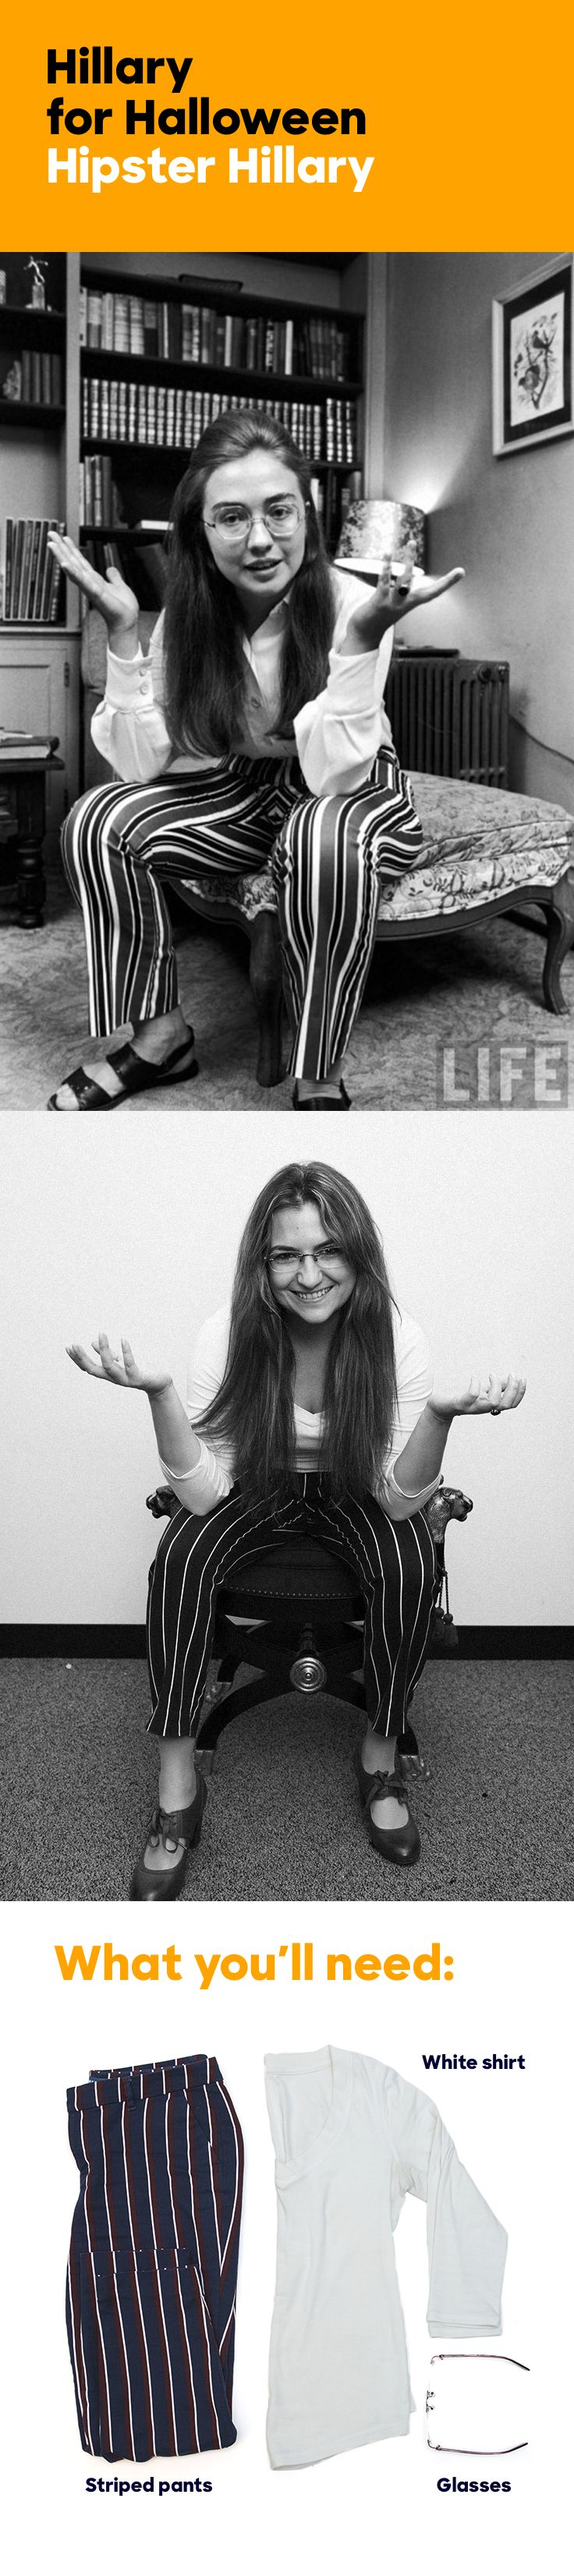 """LIFE magazine featured Wellesley College's first-ever student commencement speaker—Hillary Rodham—in its graduation round-up, """"The Class of '69."""" On the cusp of the '70s, Hillary donned oversize wire-frame glasses, strappy leather sandals, and psychedelic striped pants for the LIFE photoshoot. Channel her hipster style for Halloween! For more Hillary Clinton-inspired costumes, click this pin."""